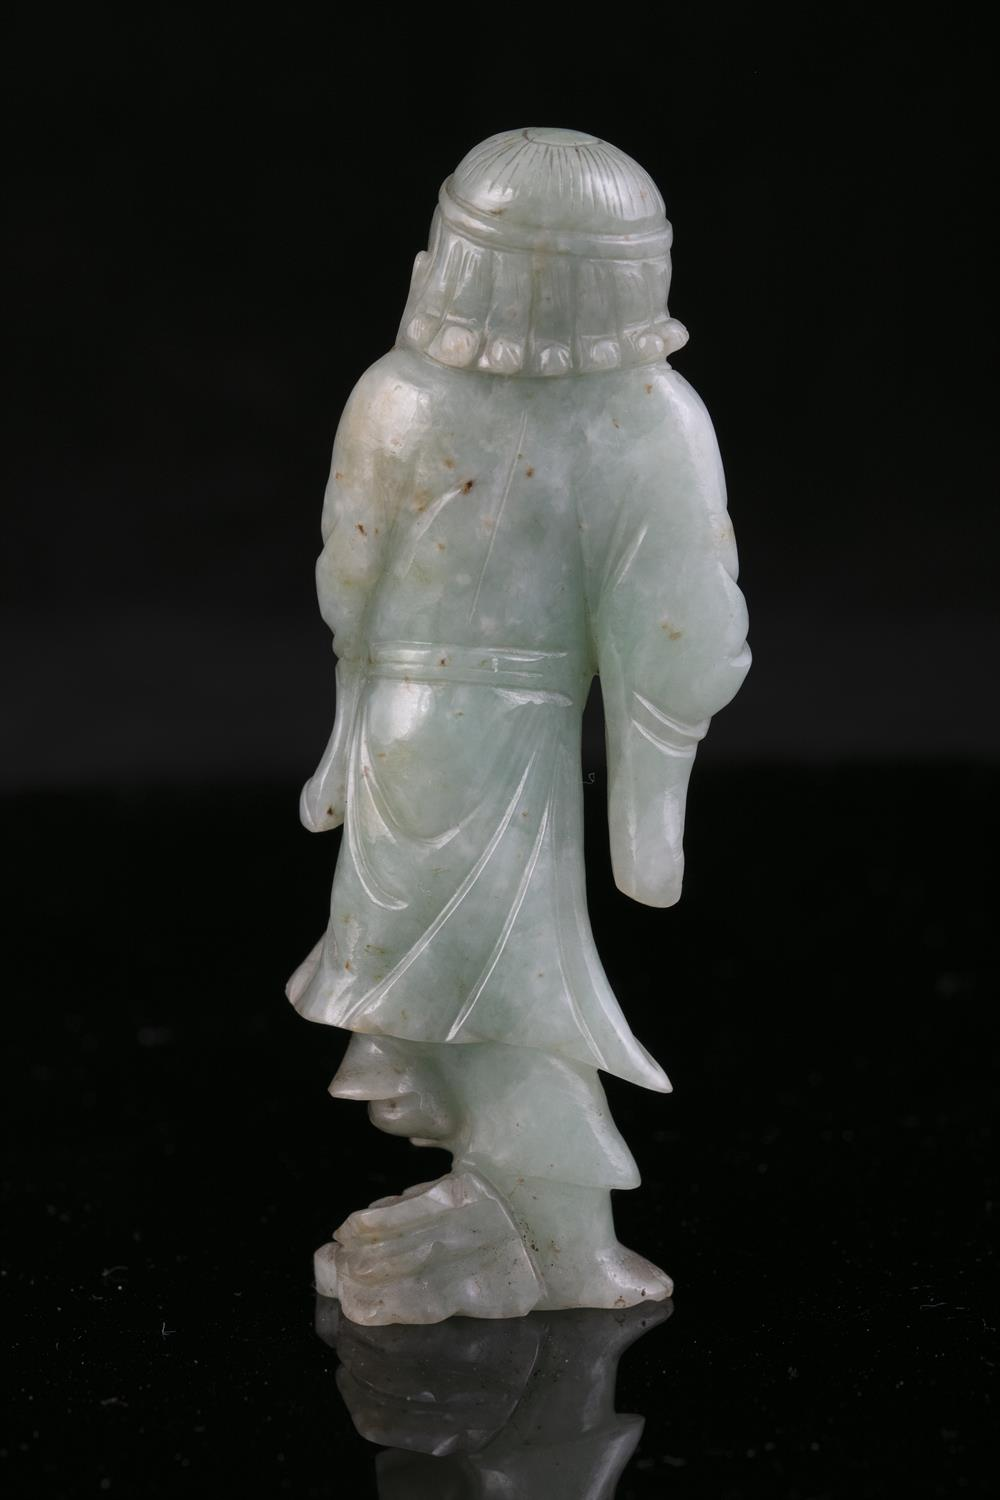 A JADEITE JADE FIGURE OF A STANDING TIEGUAI LI China, Circa 1900 The immortal is depicted with a - Image 18 of 20